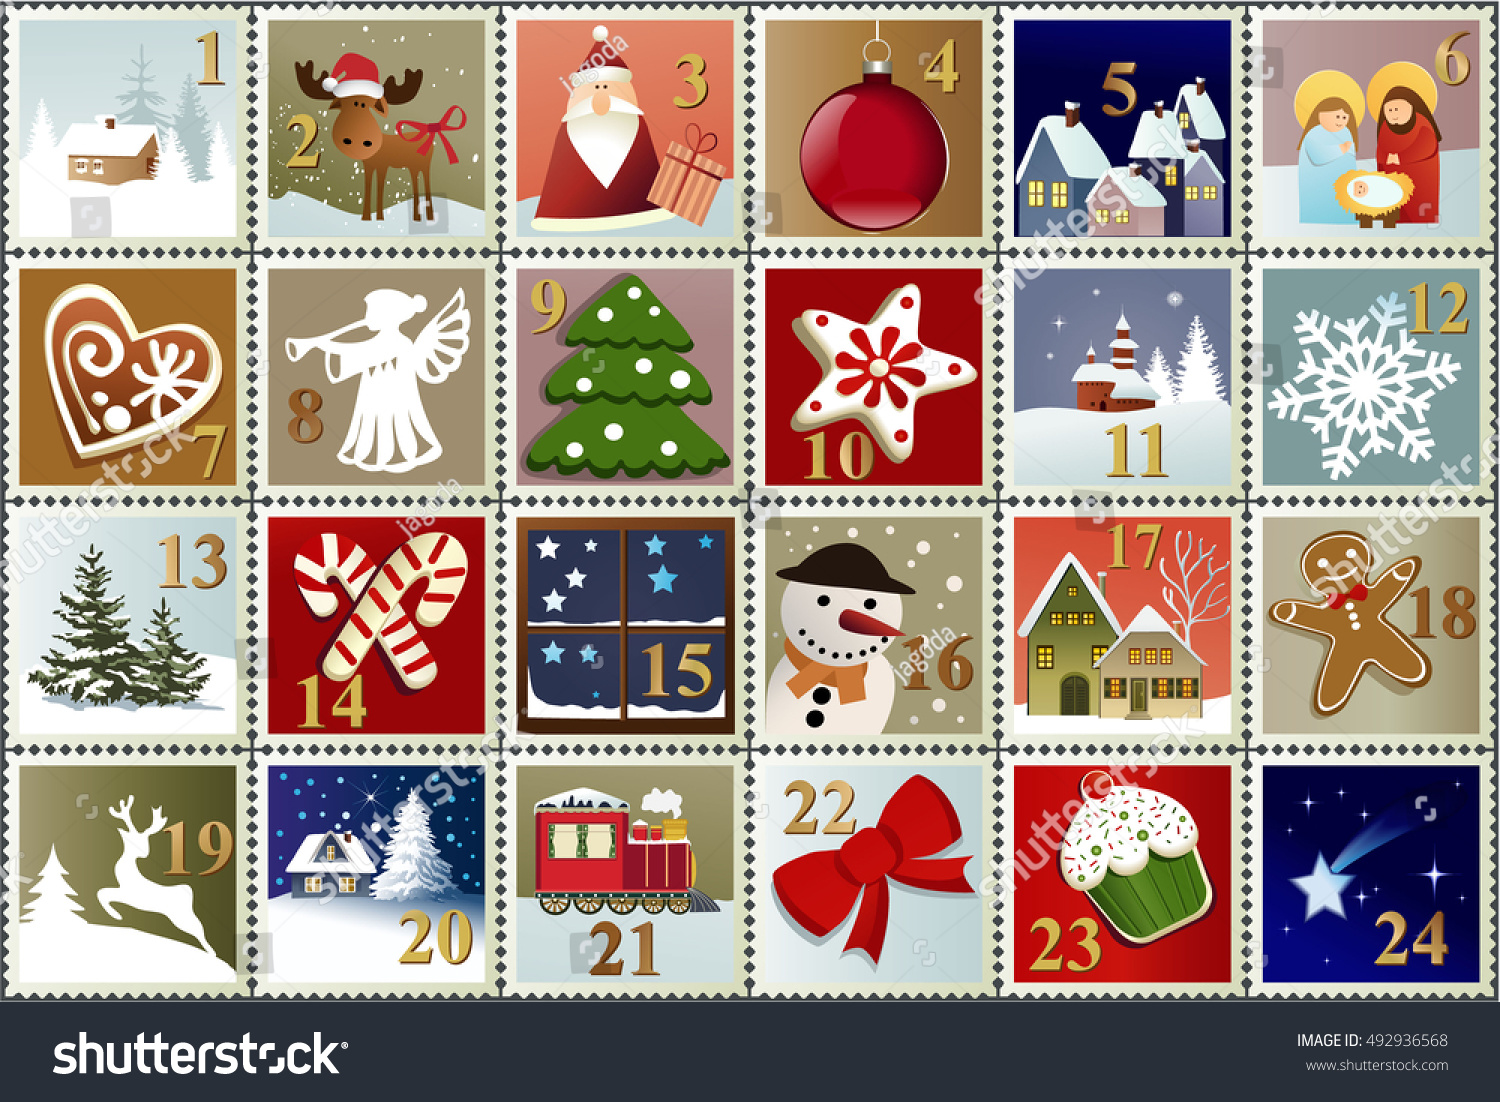 Advent Calendar Christmas Stamp Collection Stock Vector ...